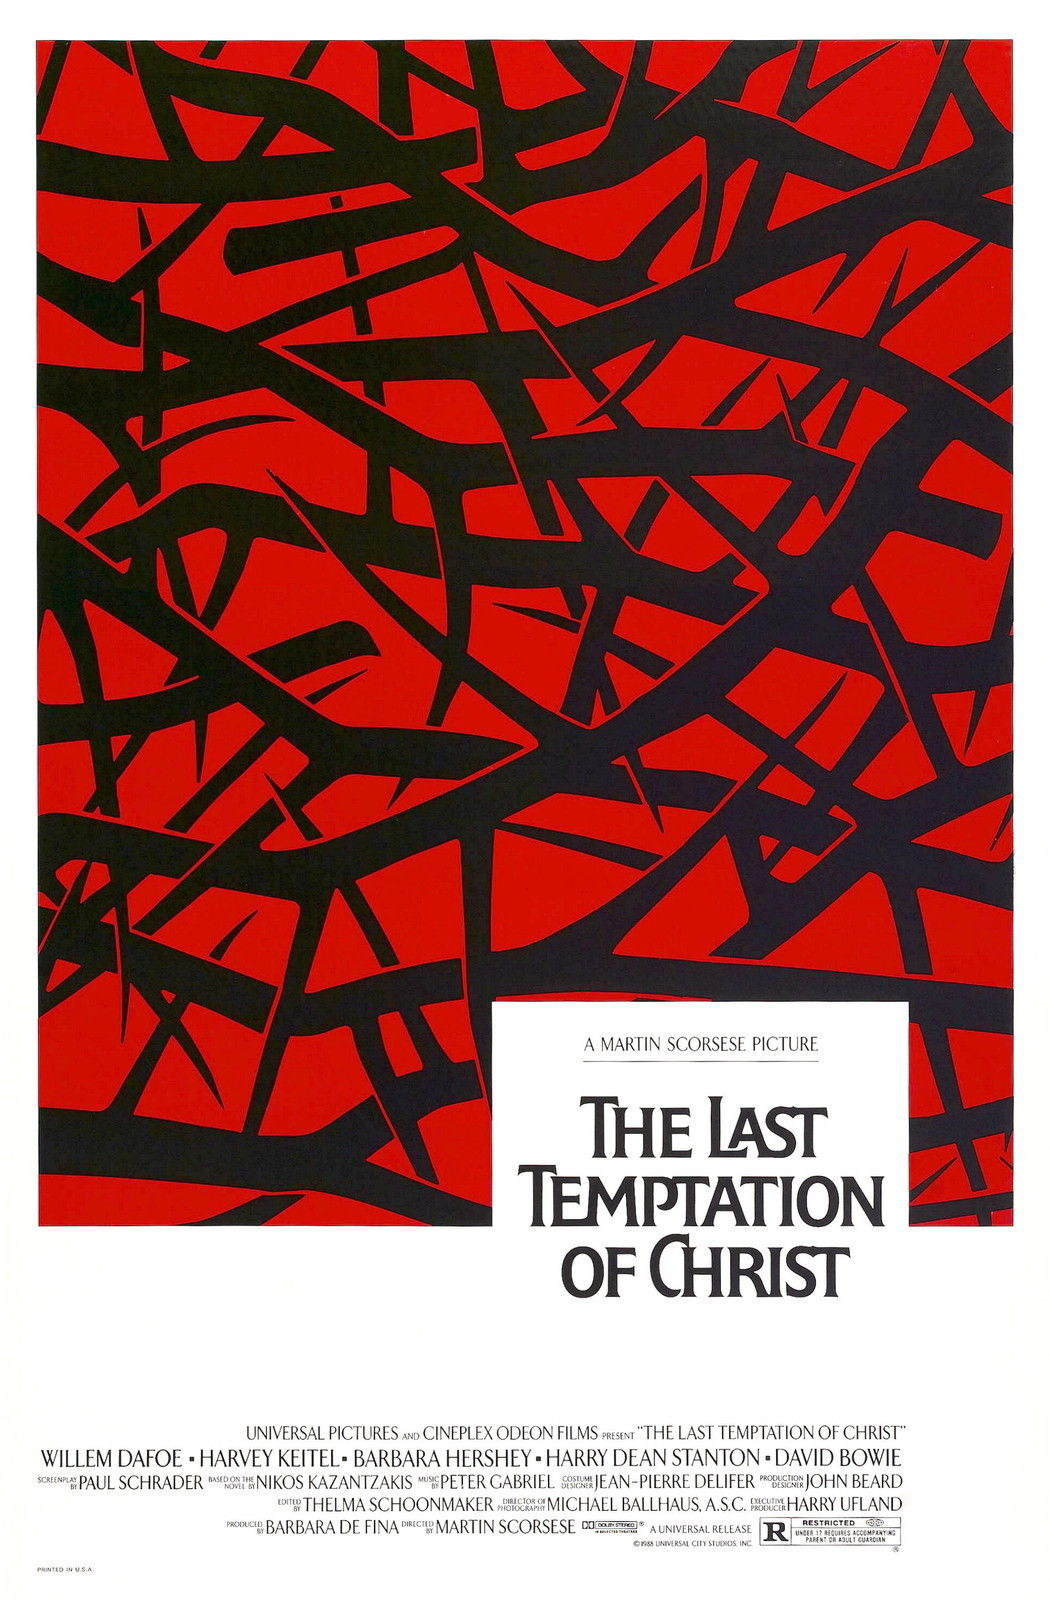 73330-THE-LAST-TEMPTATION-OF-CHRIST-Martin-Scorsese-Wall-Print-Poster-Affiche